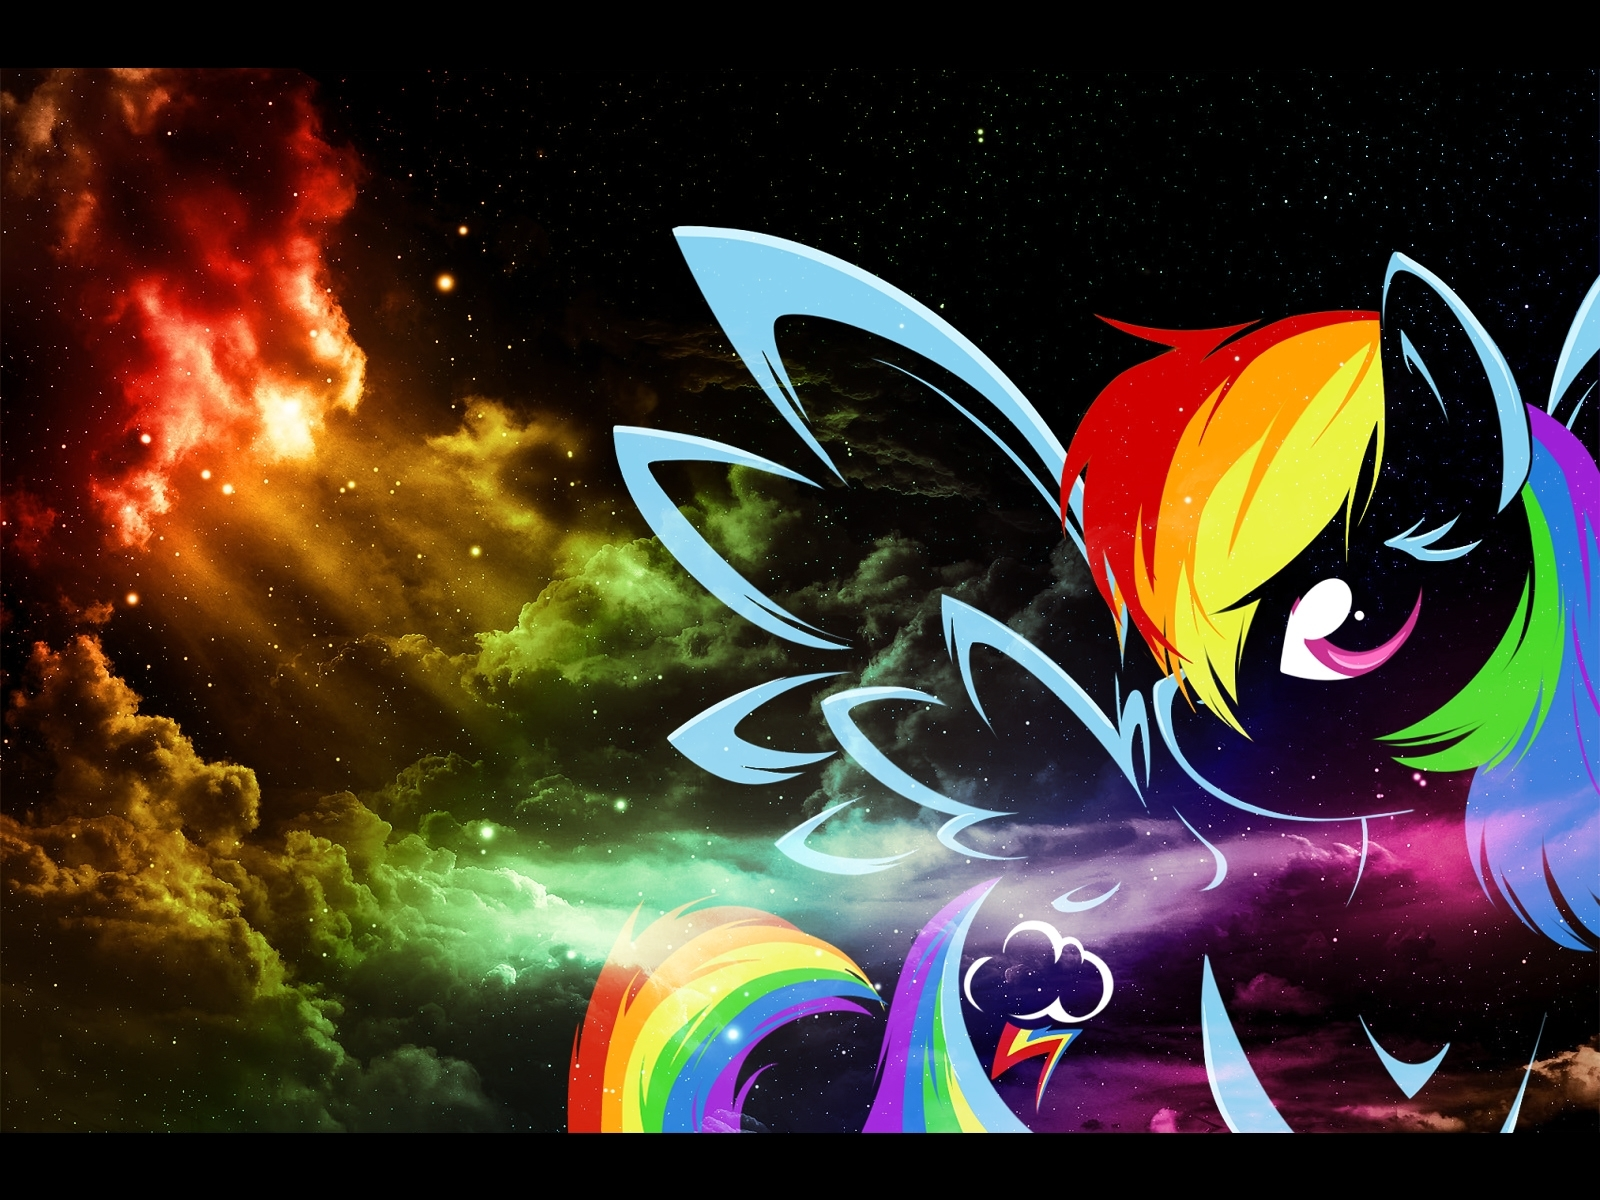 rainbow-dash-wallpapers-my-little-pony-friendship-is-magic | mlprainbow